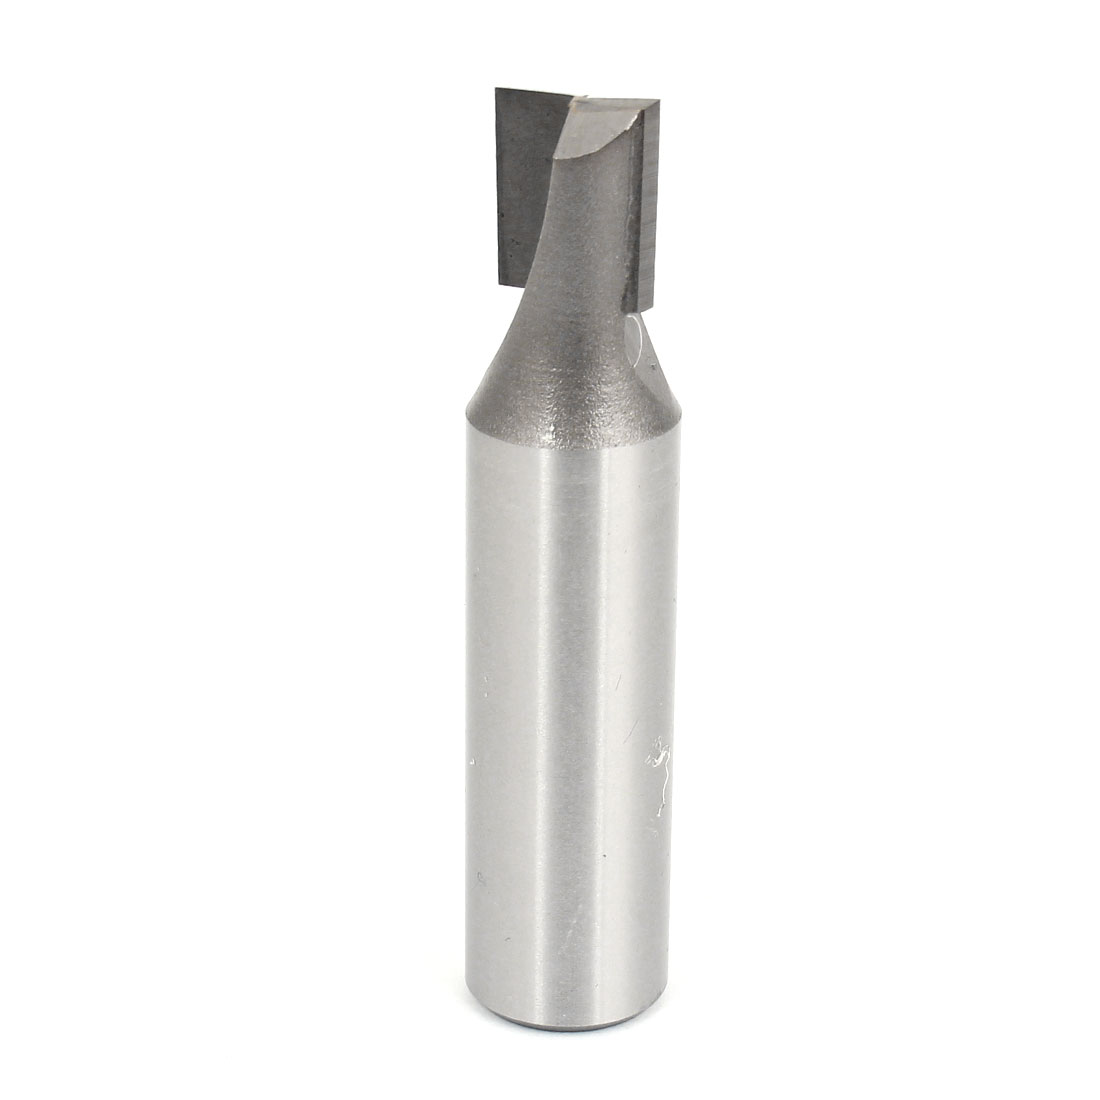 "1/2"" Round Shank 3/8"" Cutting Diameter Cleaning Bottom Router Bit Cutter"